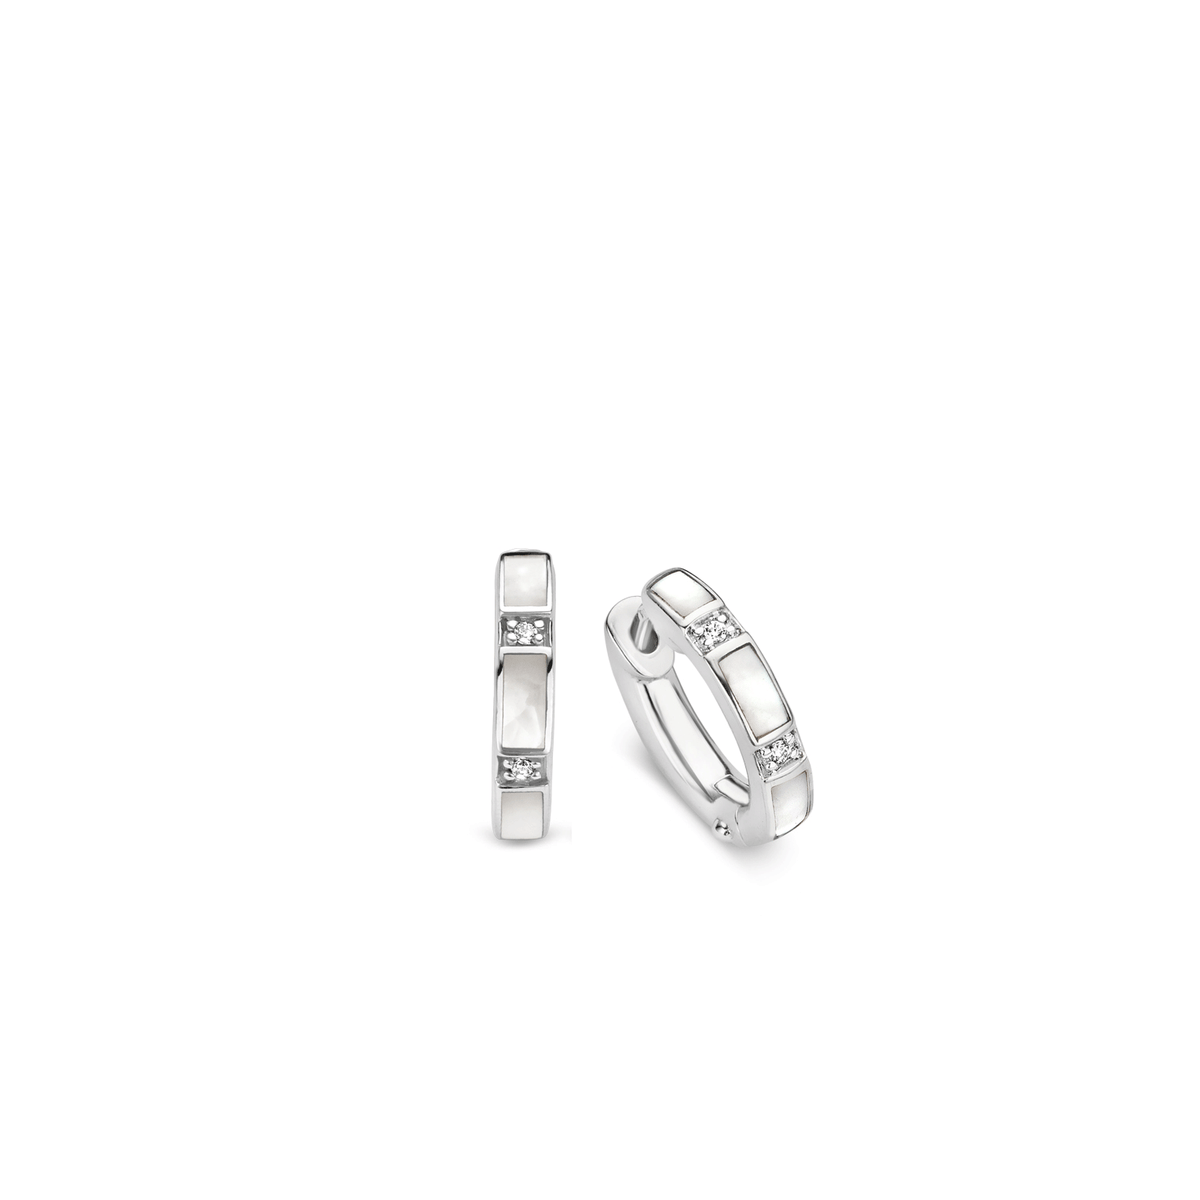 TI SENTO - Milano Earrings 7714MW